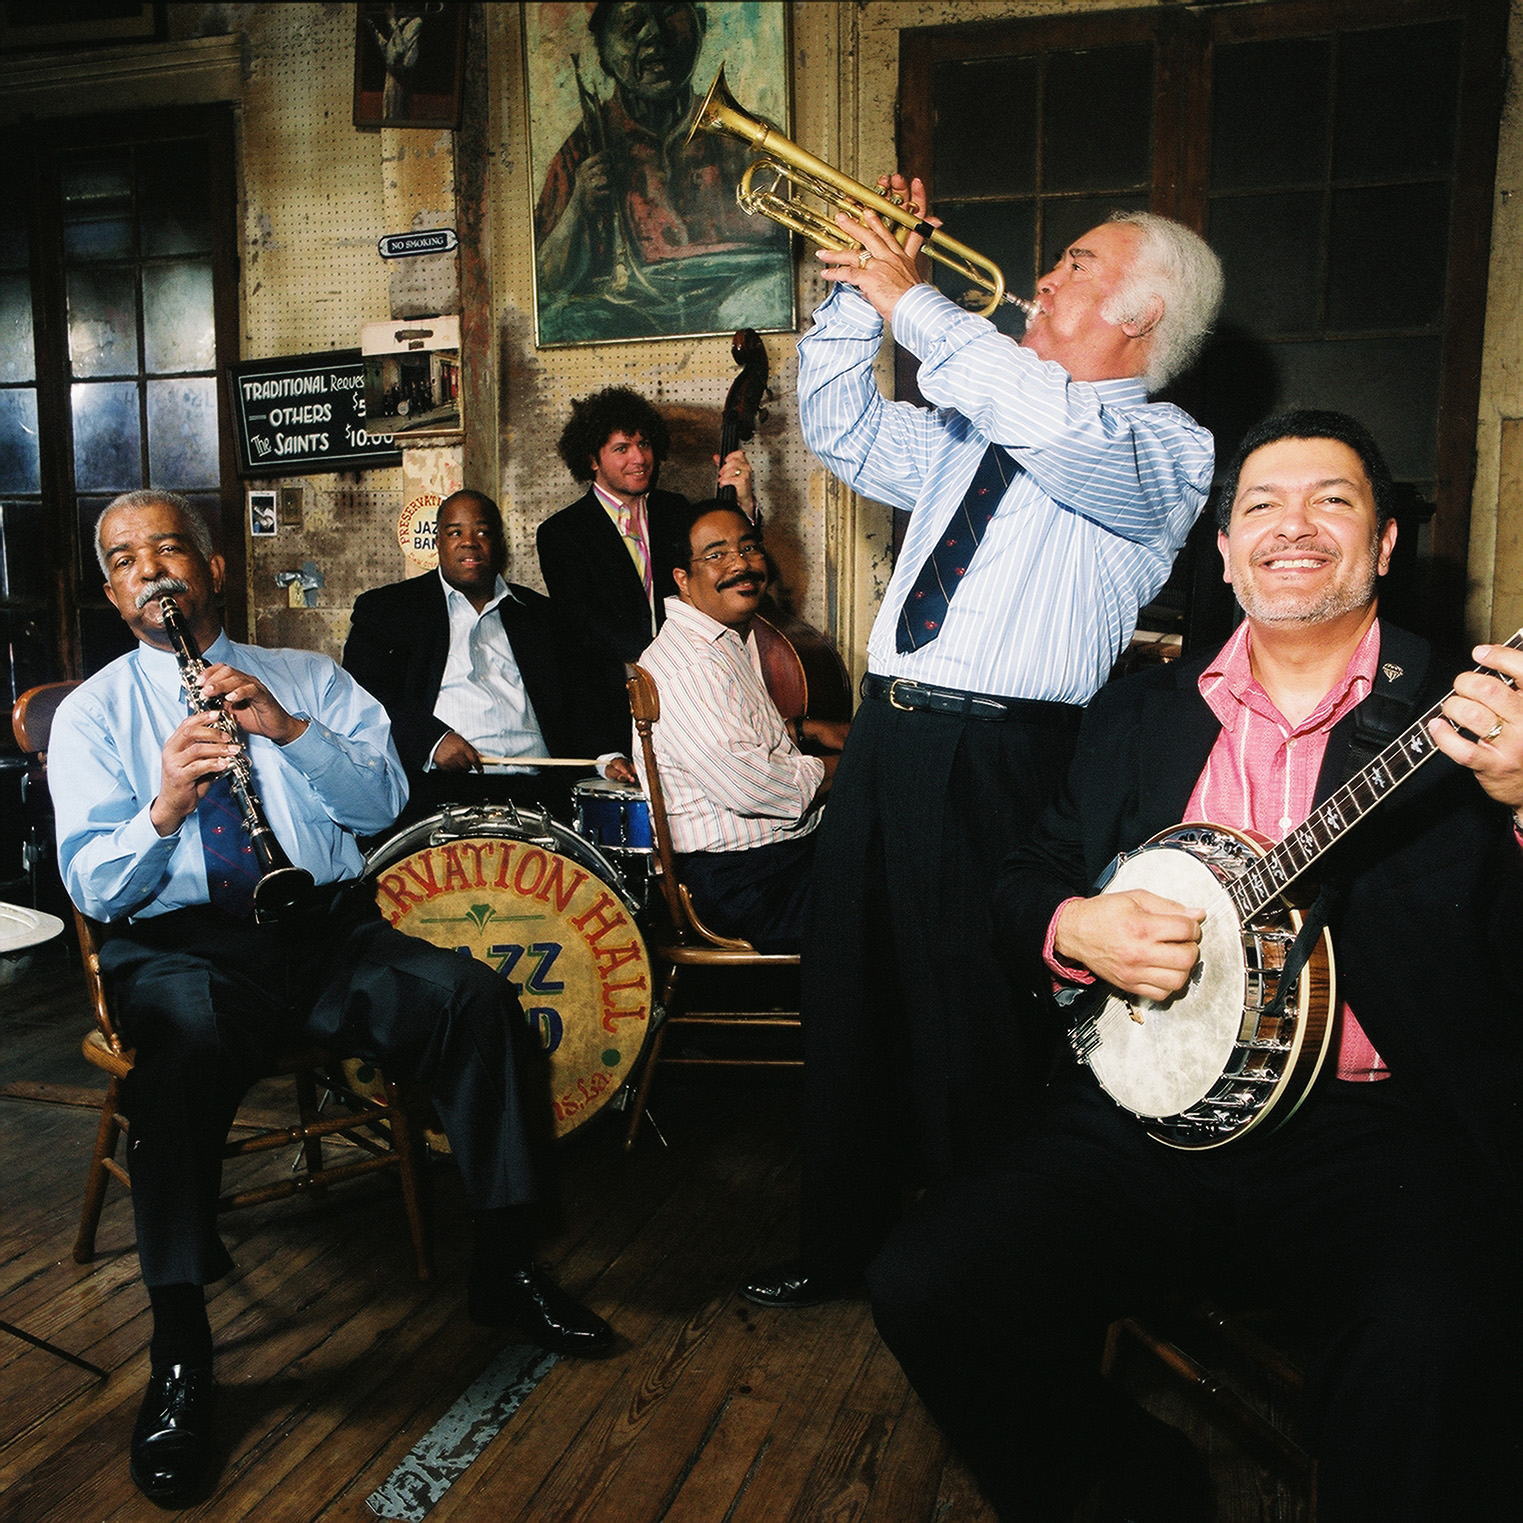 Preservation Hall - Adult/Evening Activities - 726 St Peter St, New Orleans, LA, 70116, US